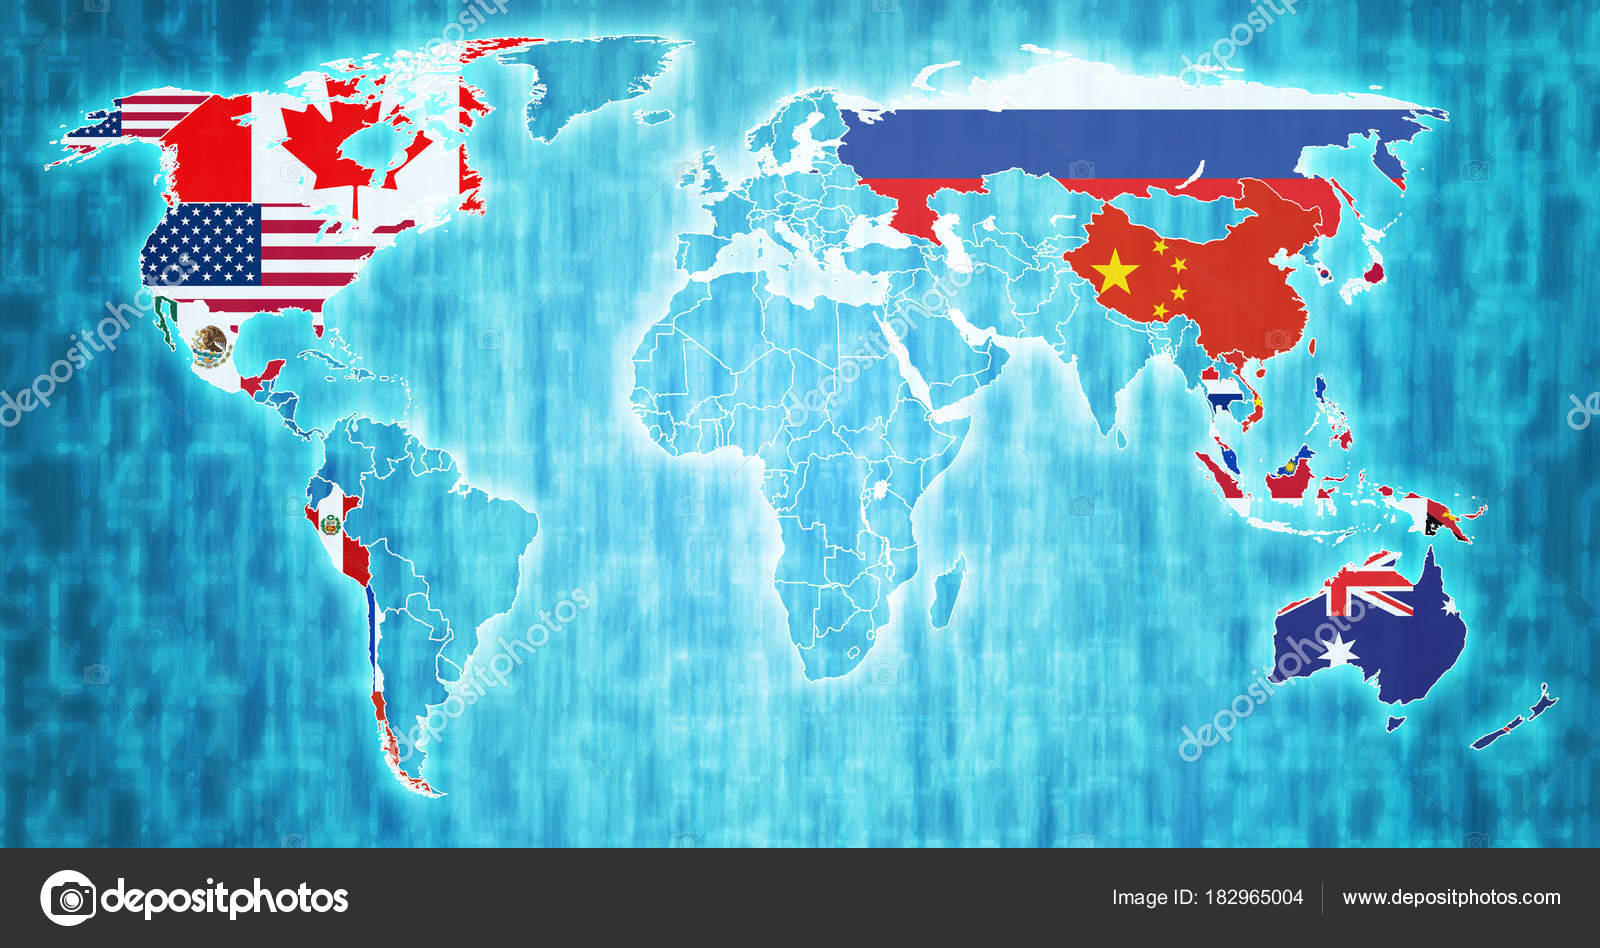 asia pacific economic cooperation member countries flags on world map with national borders photo by michal812